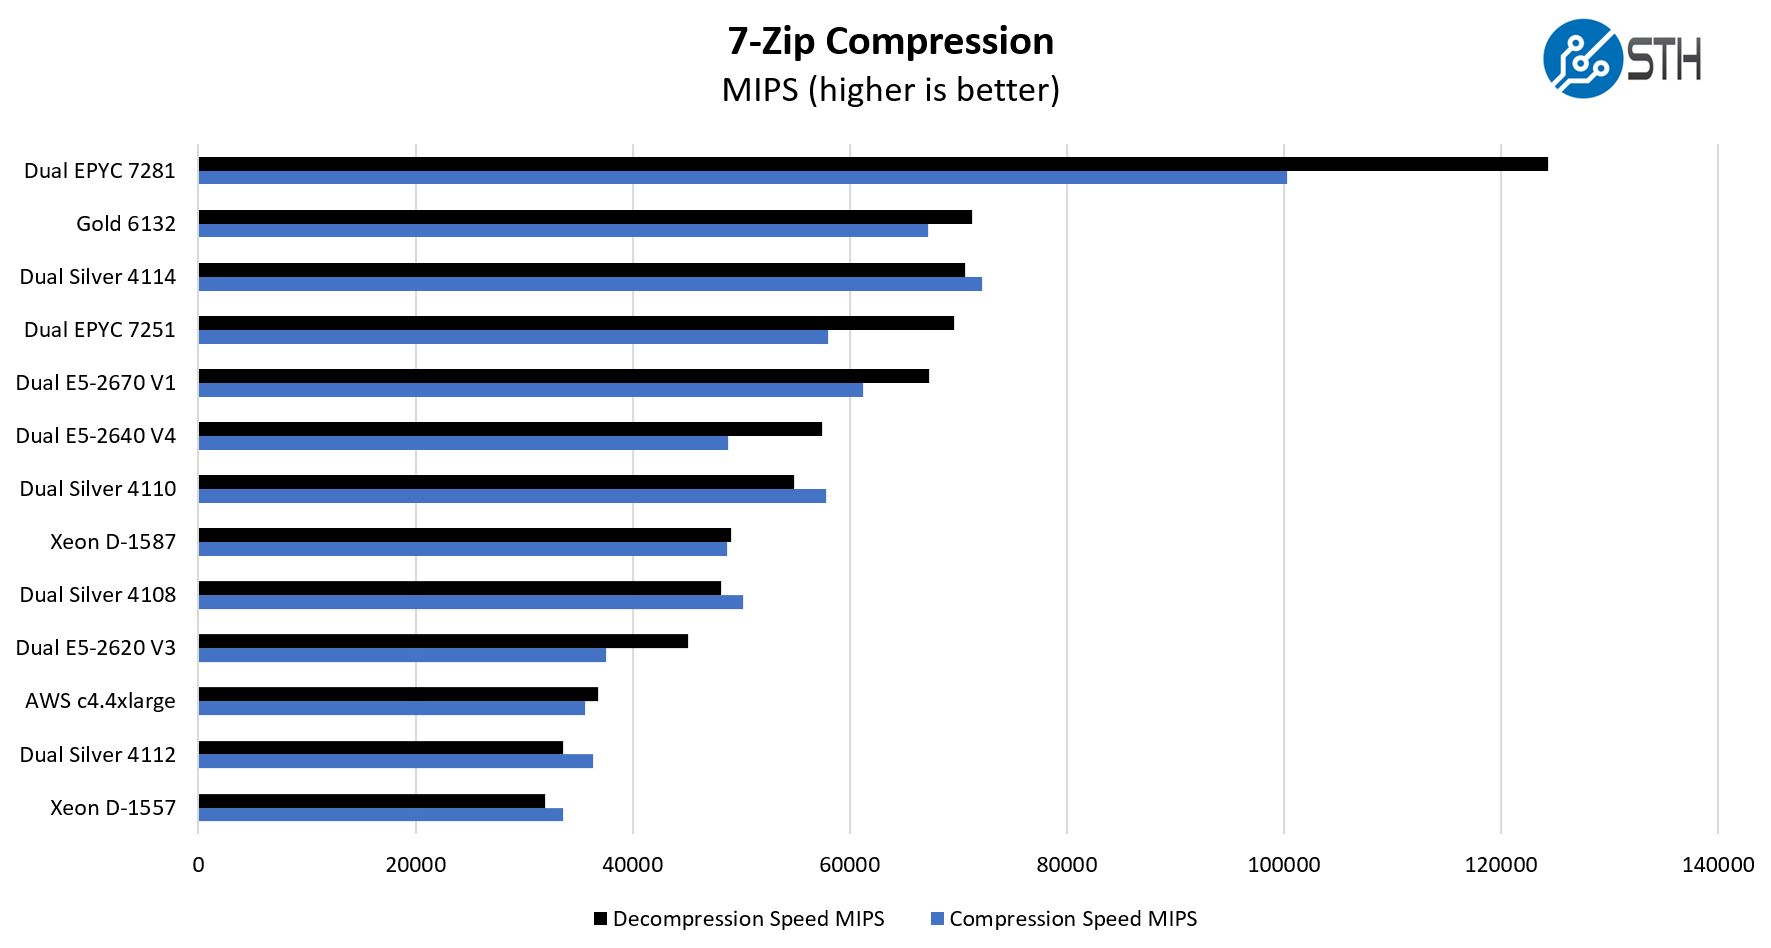 Dual-AMD-EPYC-7251-7zip-Compression-benchmarks.jpg